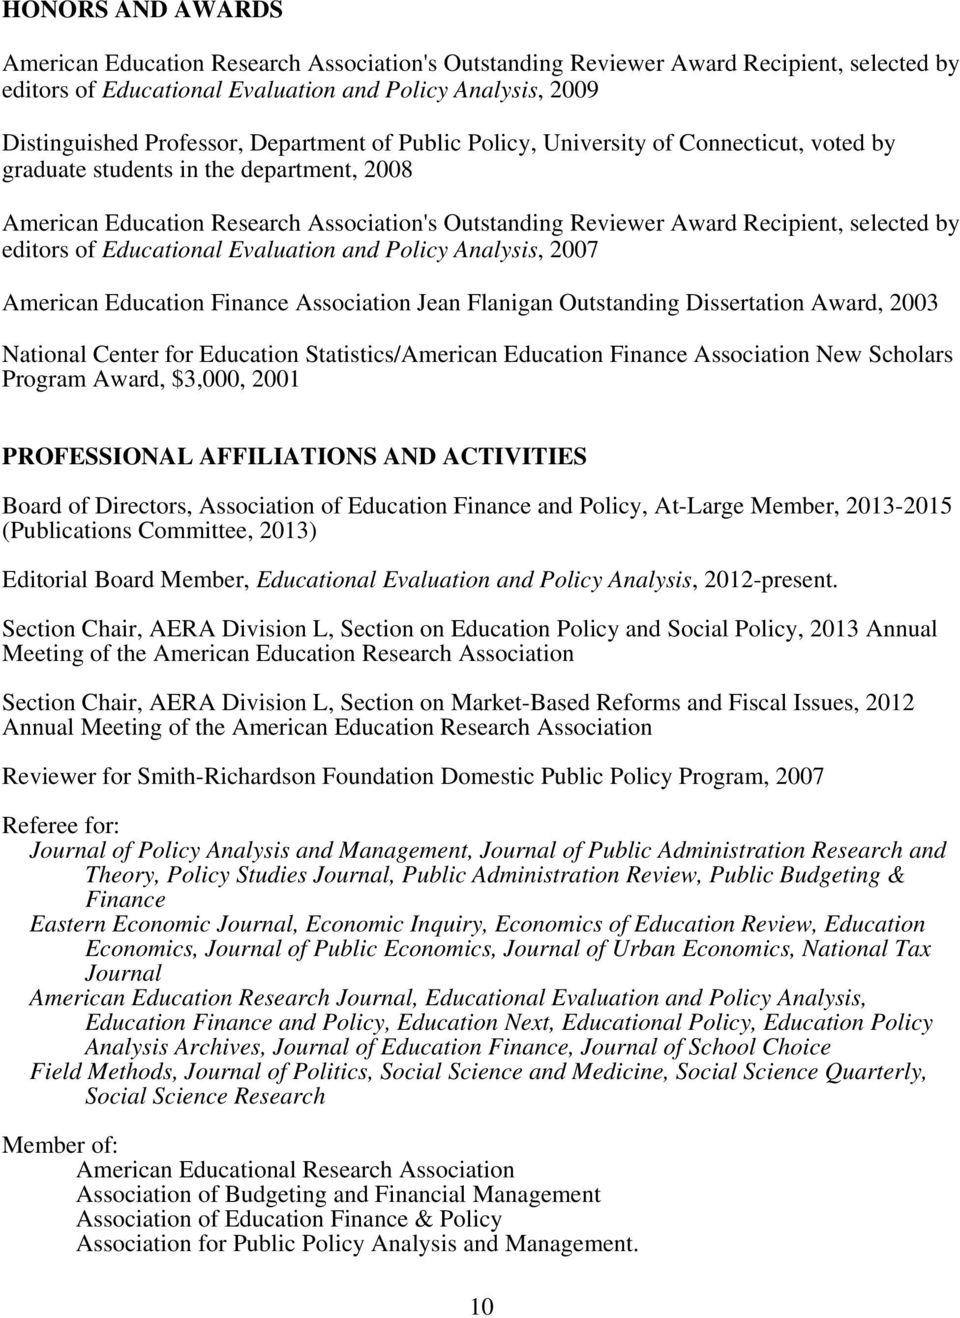 editors of Educational Evaluation and Policy Analysis, 2007 American Education Finance Association Jean Flanigan Outstanding Dissertation Award, 2003 National Center for Education Statistics/American